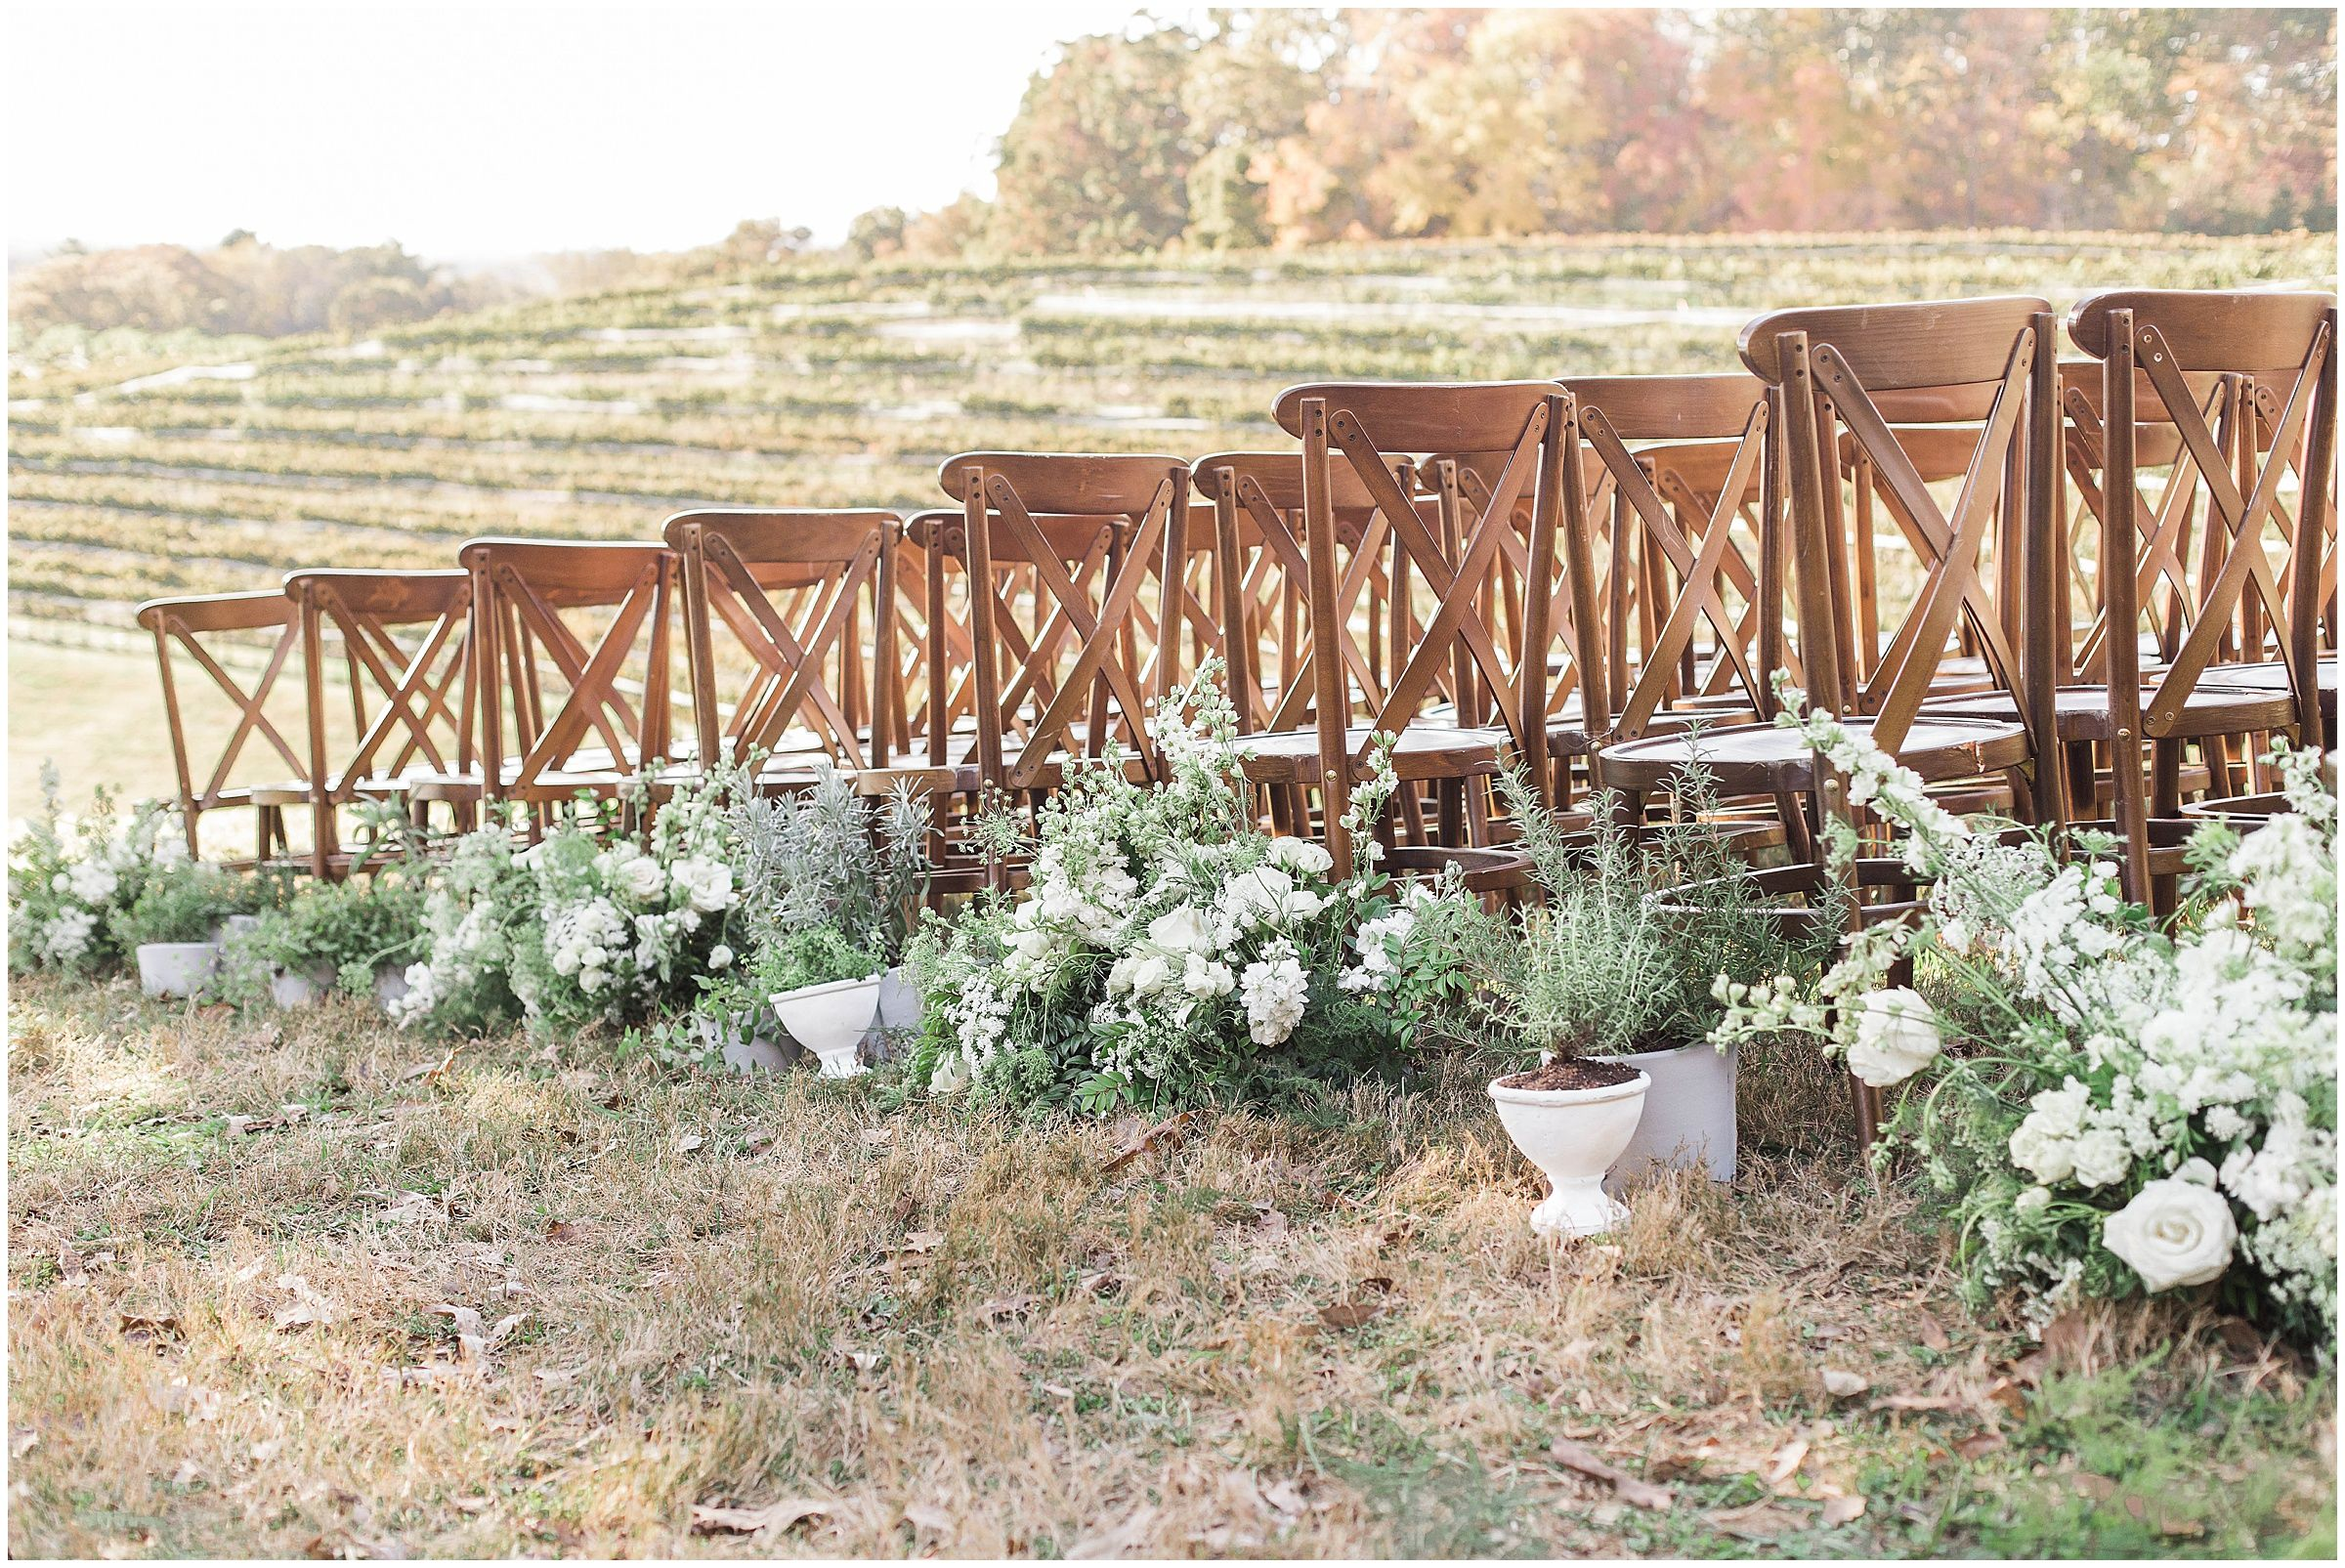 Montaluce Winery Wedding With Tuscan Inspired Details In Dahlonega Ga Tuscan Inspired Wedding Winery Weddings Tuscany Wedding Theme